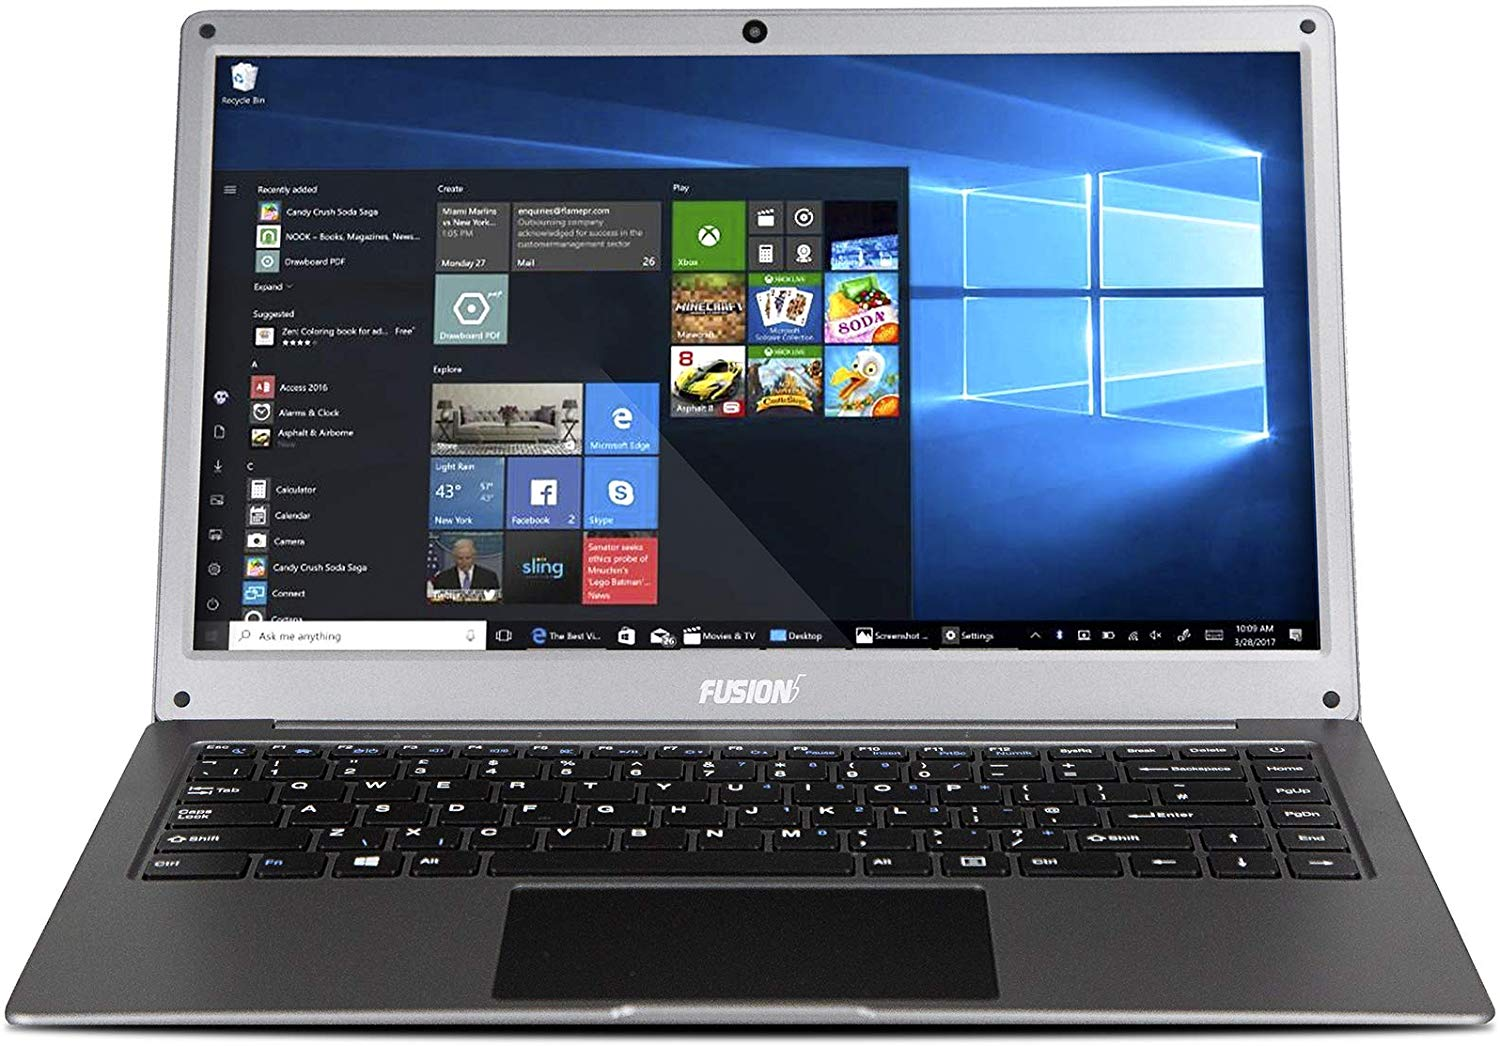 "14.1"" Full HD Windows 10 Laptop"